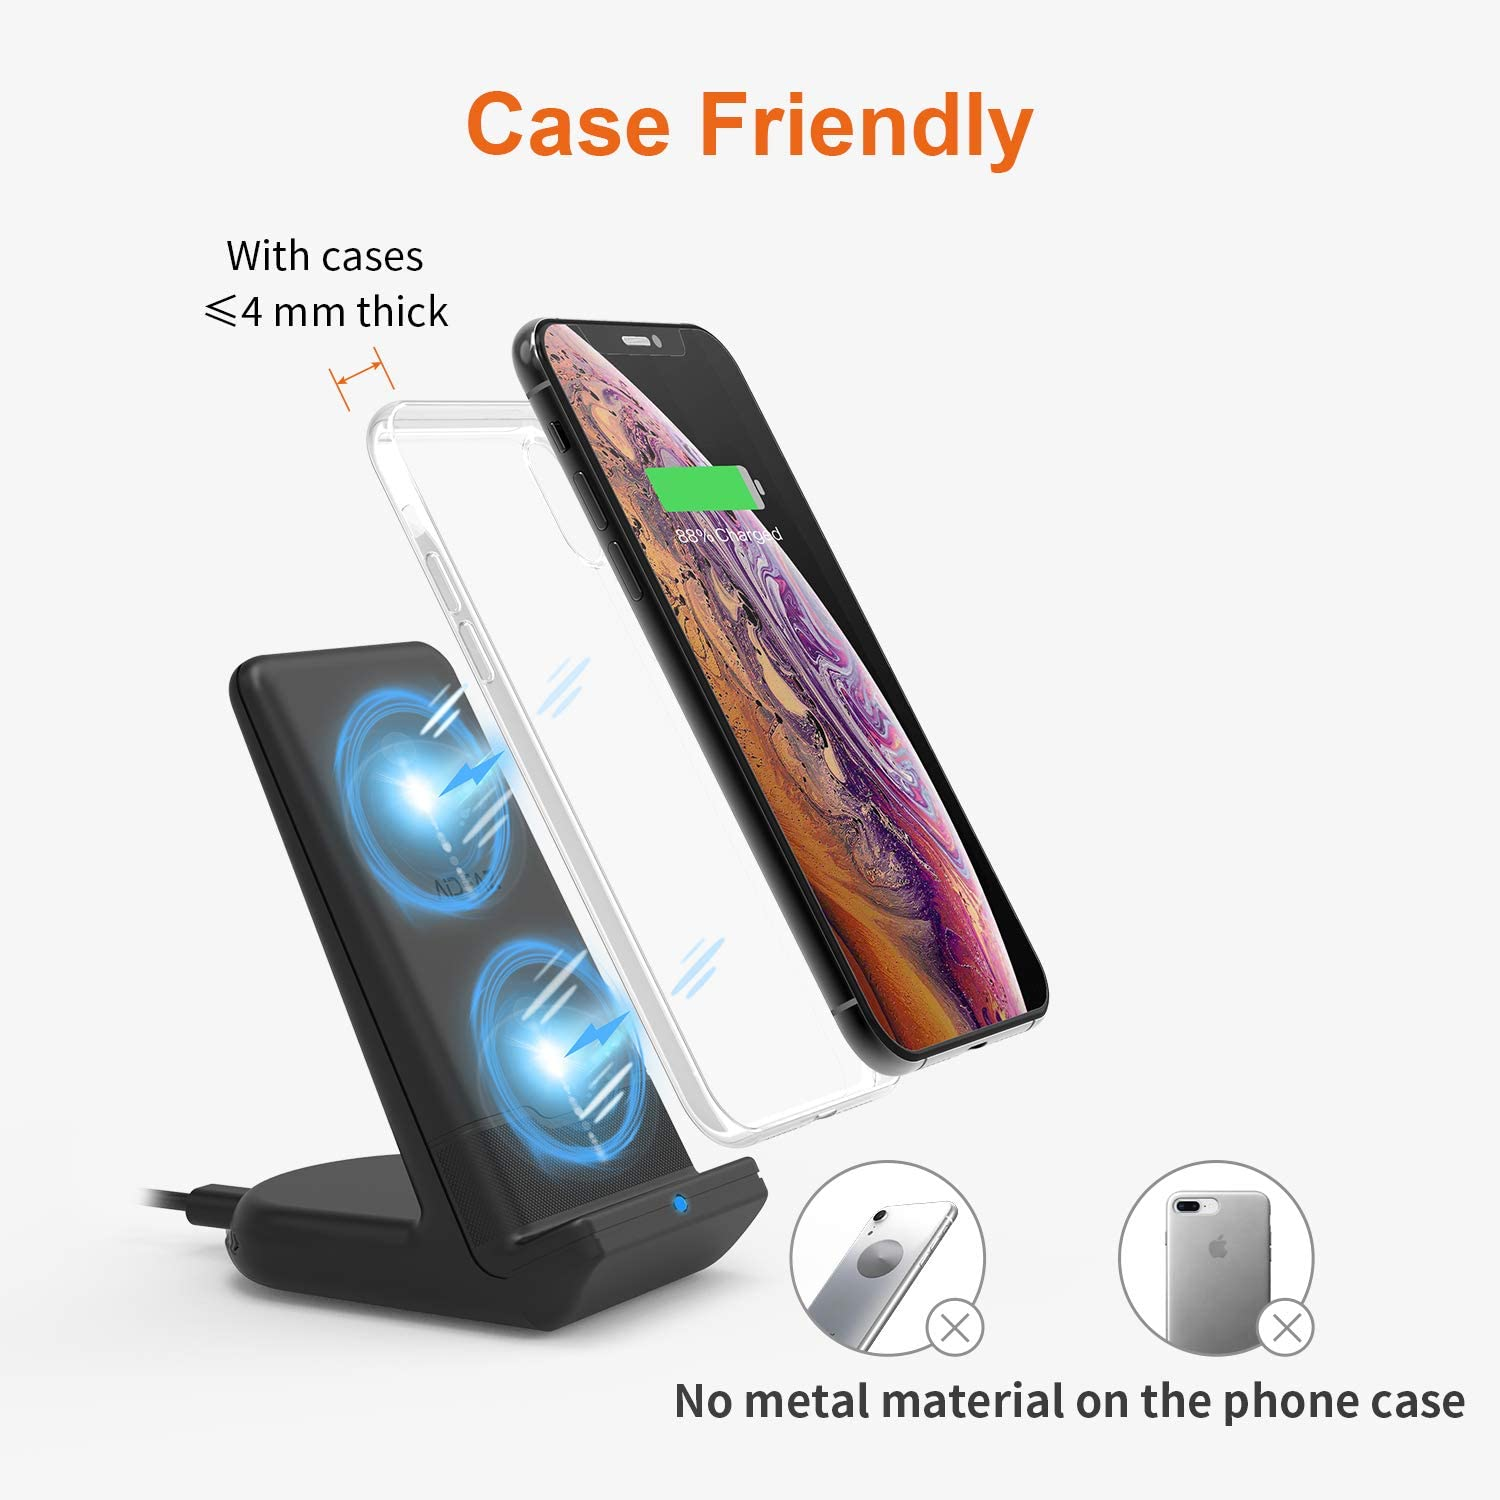 5W for Other Qi Phones 10W for Galaxy S20//S10//S9//Note 10//Note 9 AIDEAZ Wireless Charger Qi Wireless Charging Stand Compatible with iPhone 11//11 Pro Max//XS Max//XR//XS//X//8//Plus//8 Includes AC Adapter